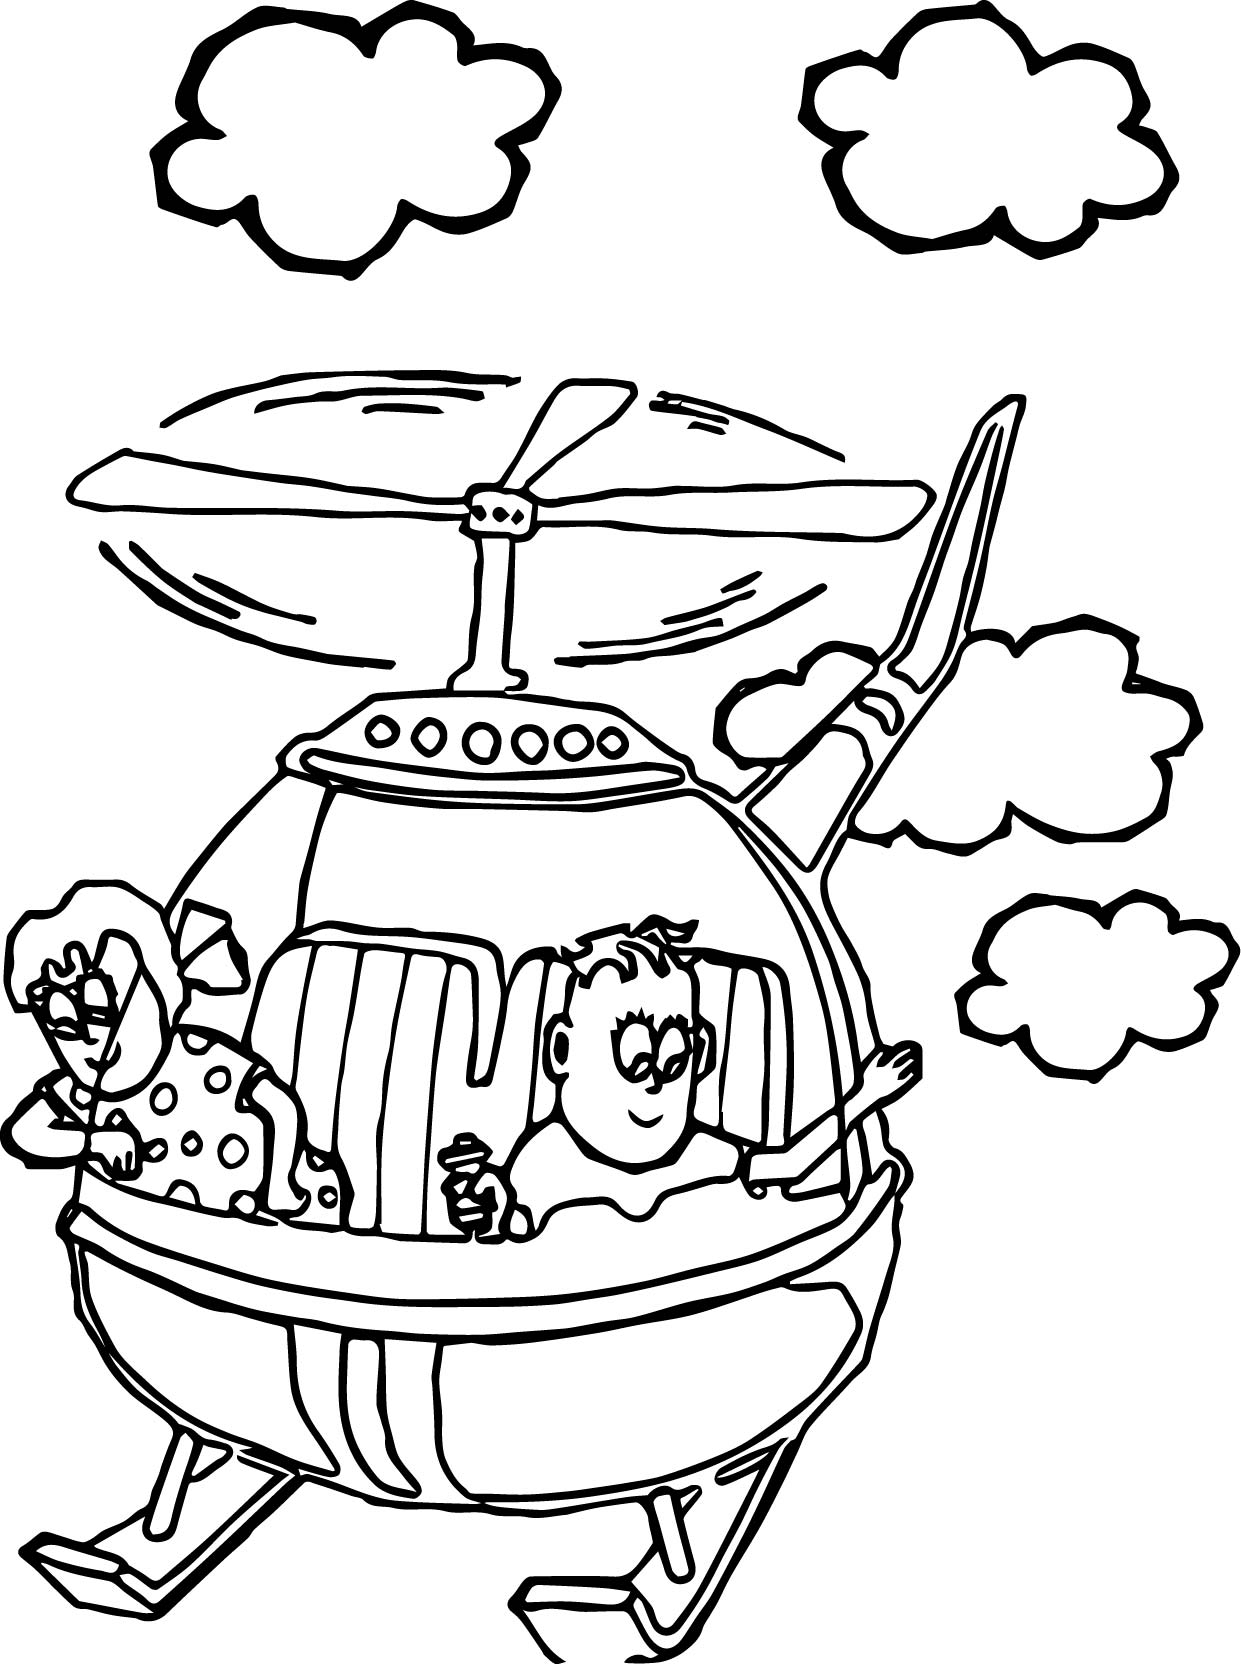 Helicopter Coloring Pages | Free download best Helicopter Coloring ...